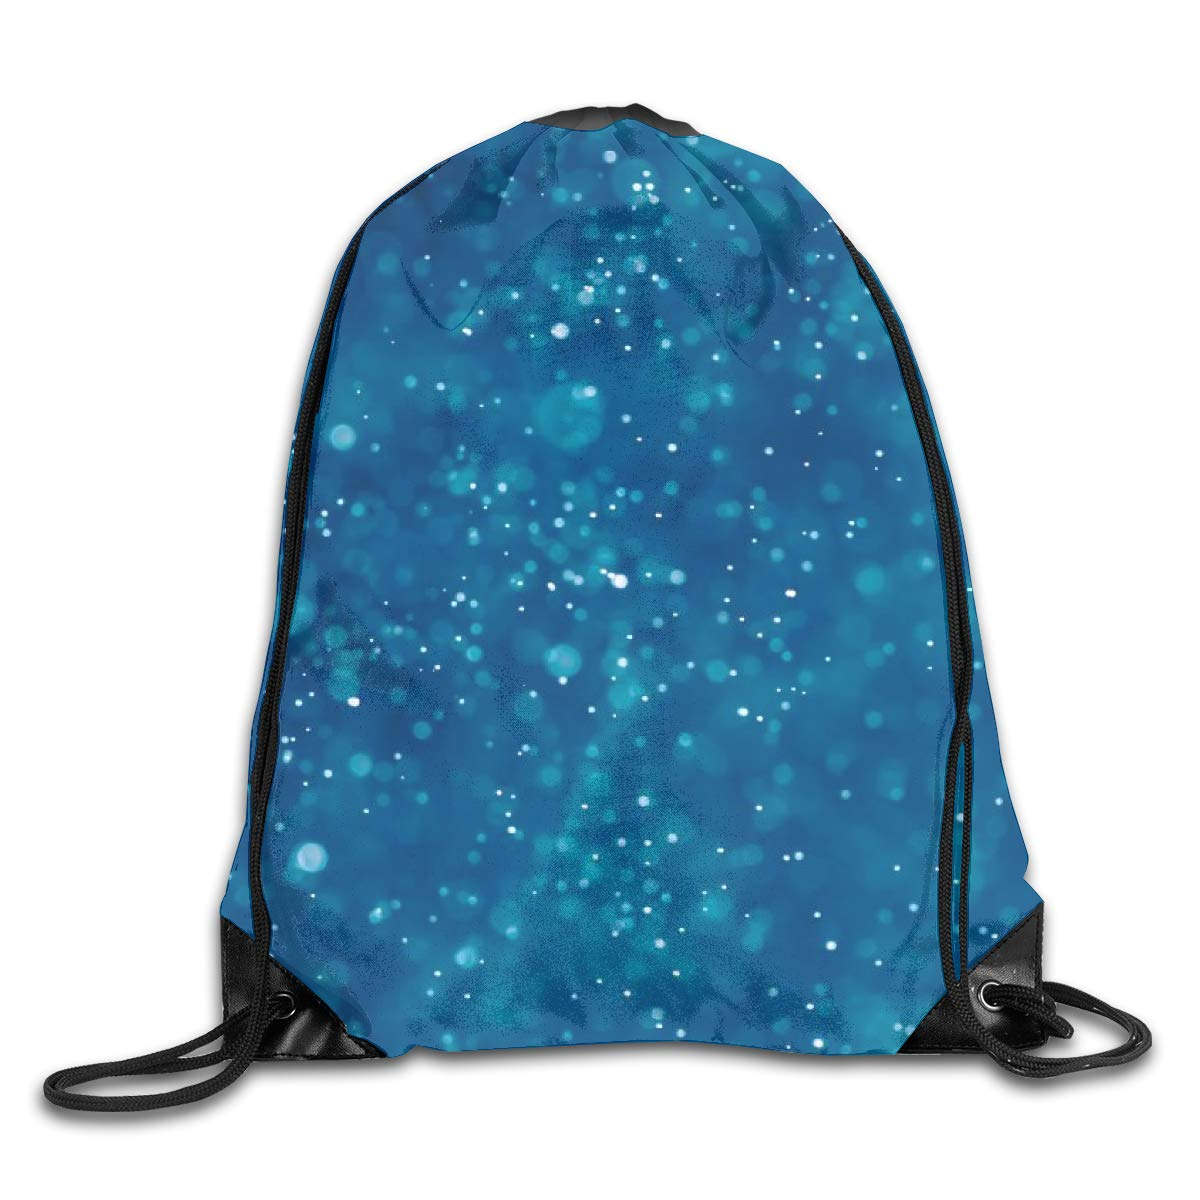 Blue Star Beam Mouth Backpack Pull Rope Shoulder Bag Outdoor Sports Leisure Bag